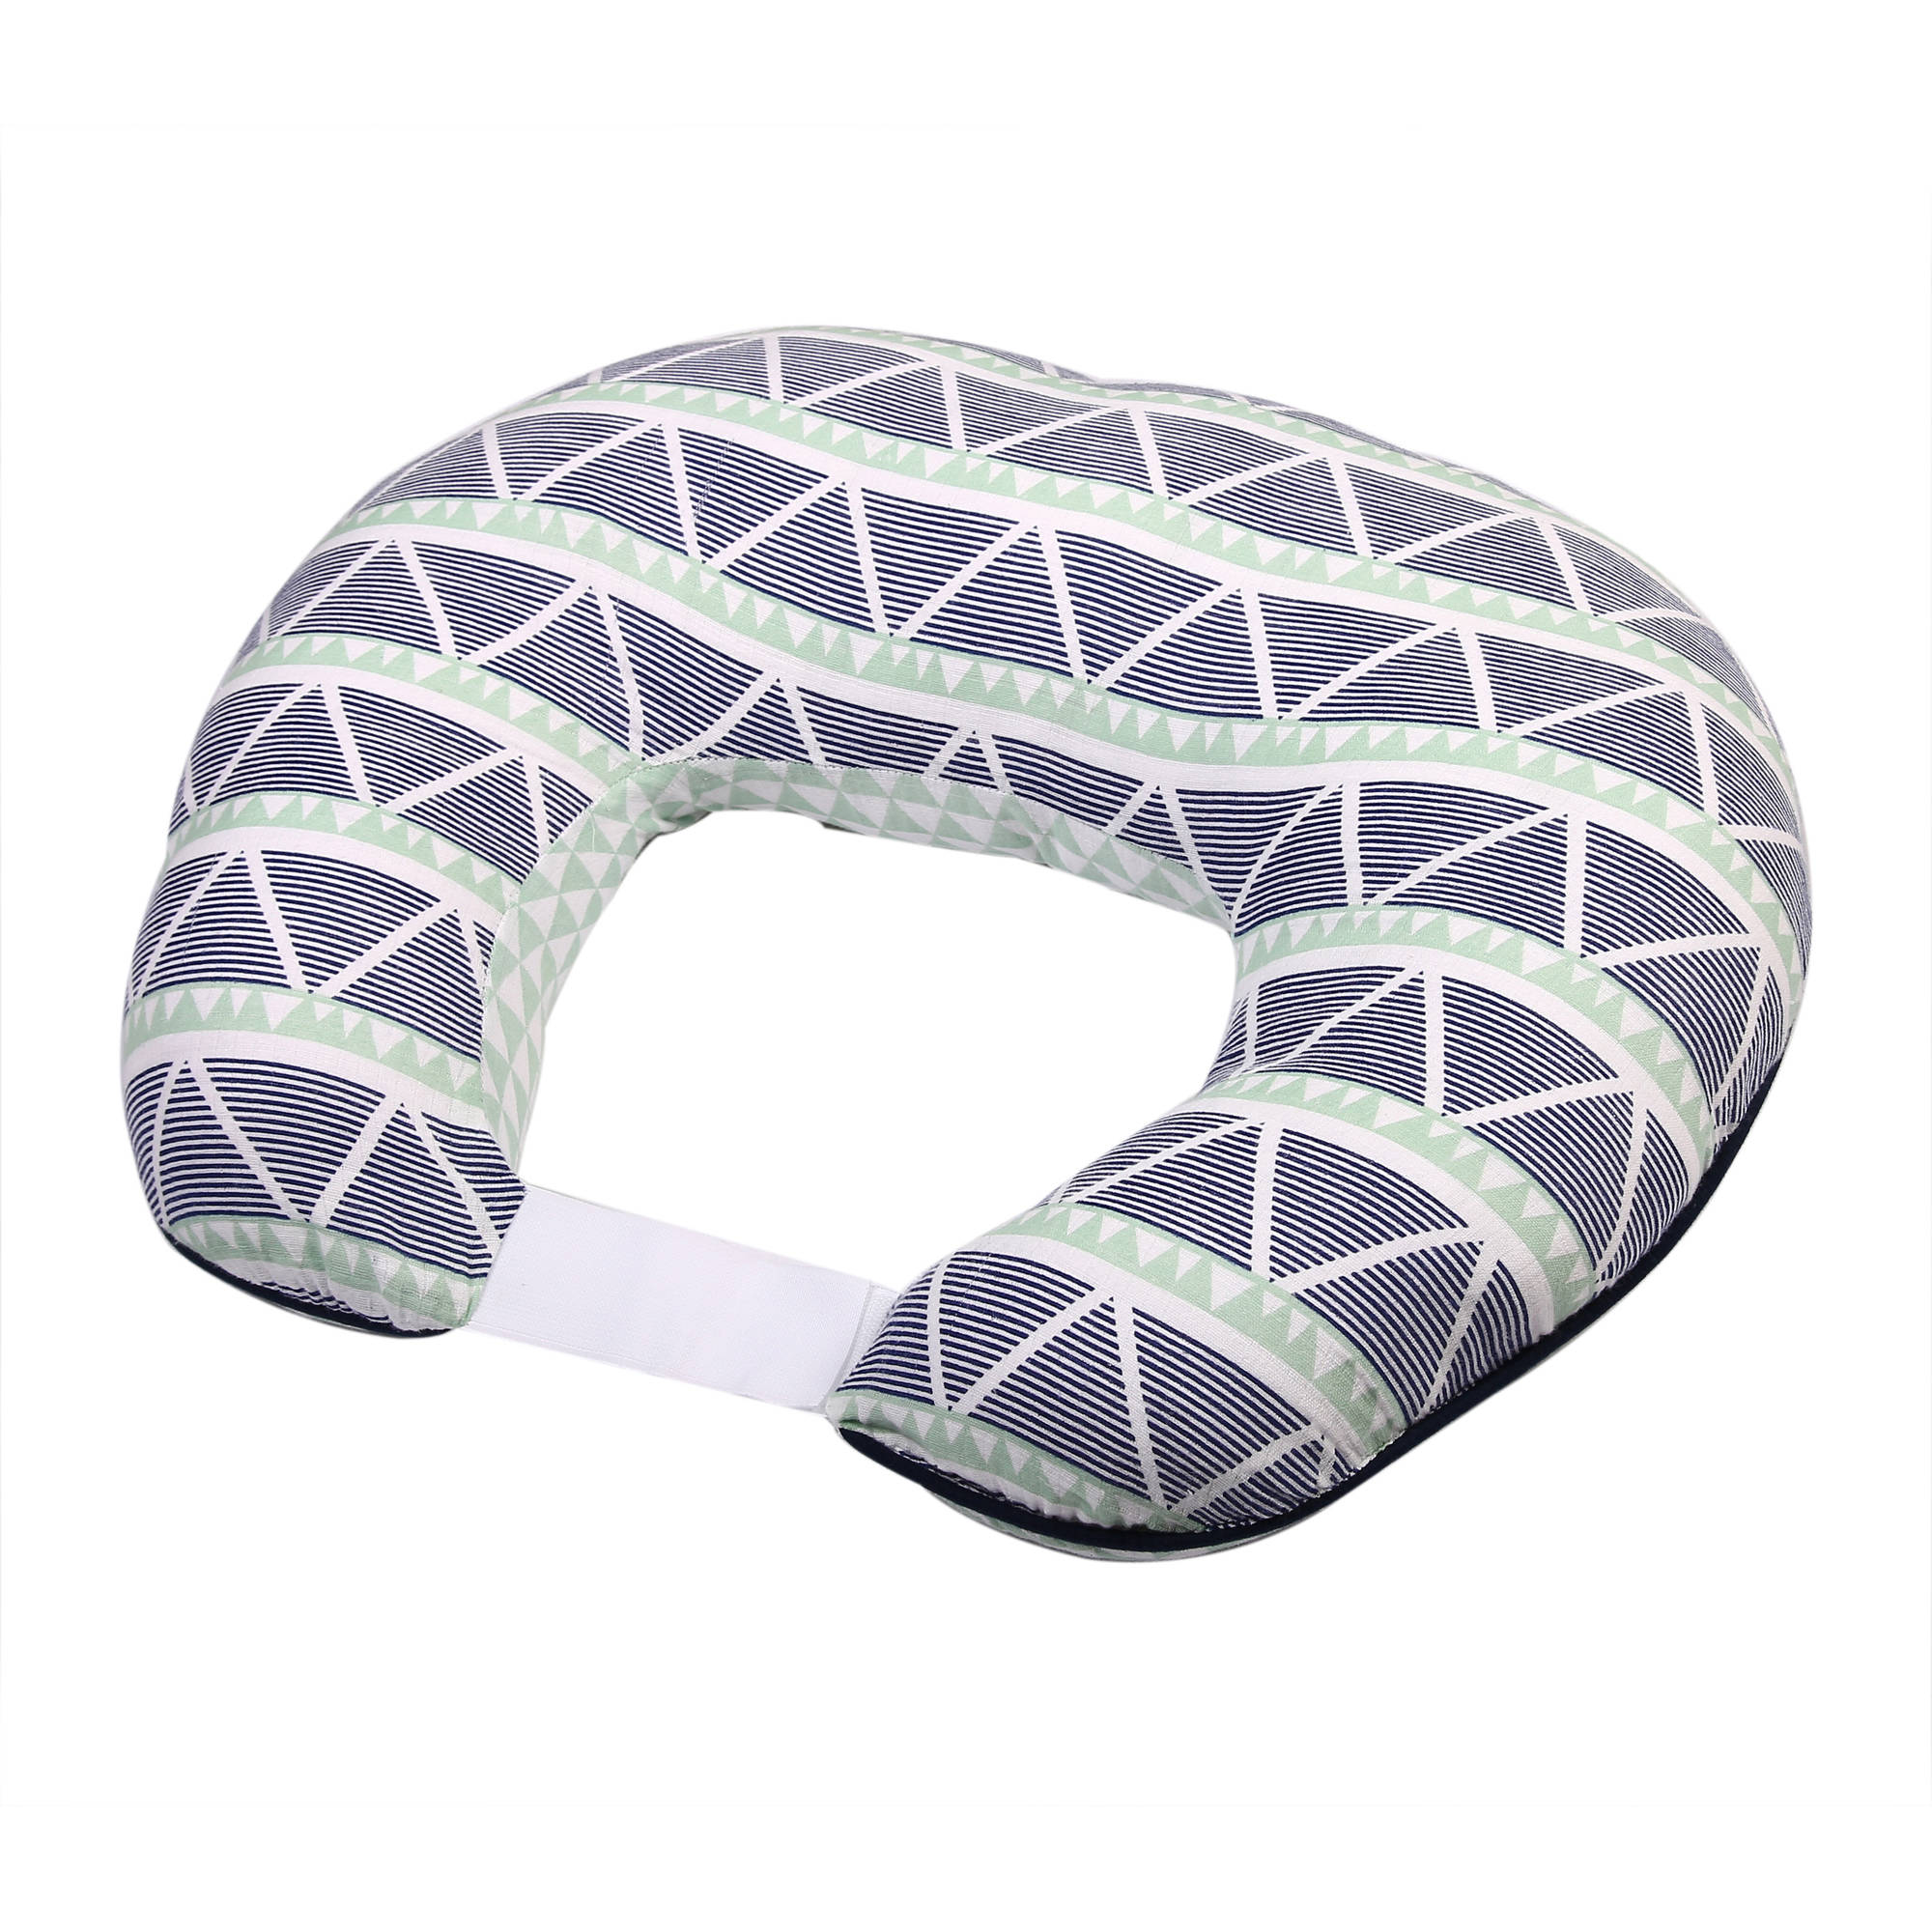 Bacati - Emma Aztec Mint/Navy Large Triangles Muslin Nursing Pillow includes cover and polyfilled pillow insert